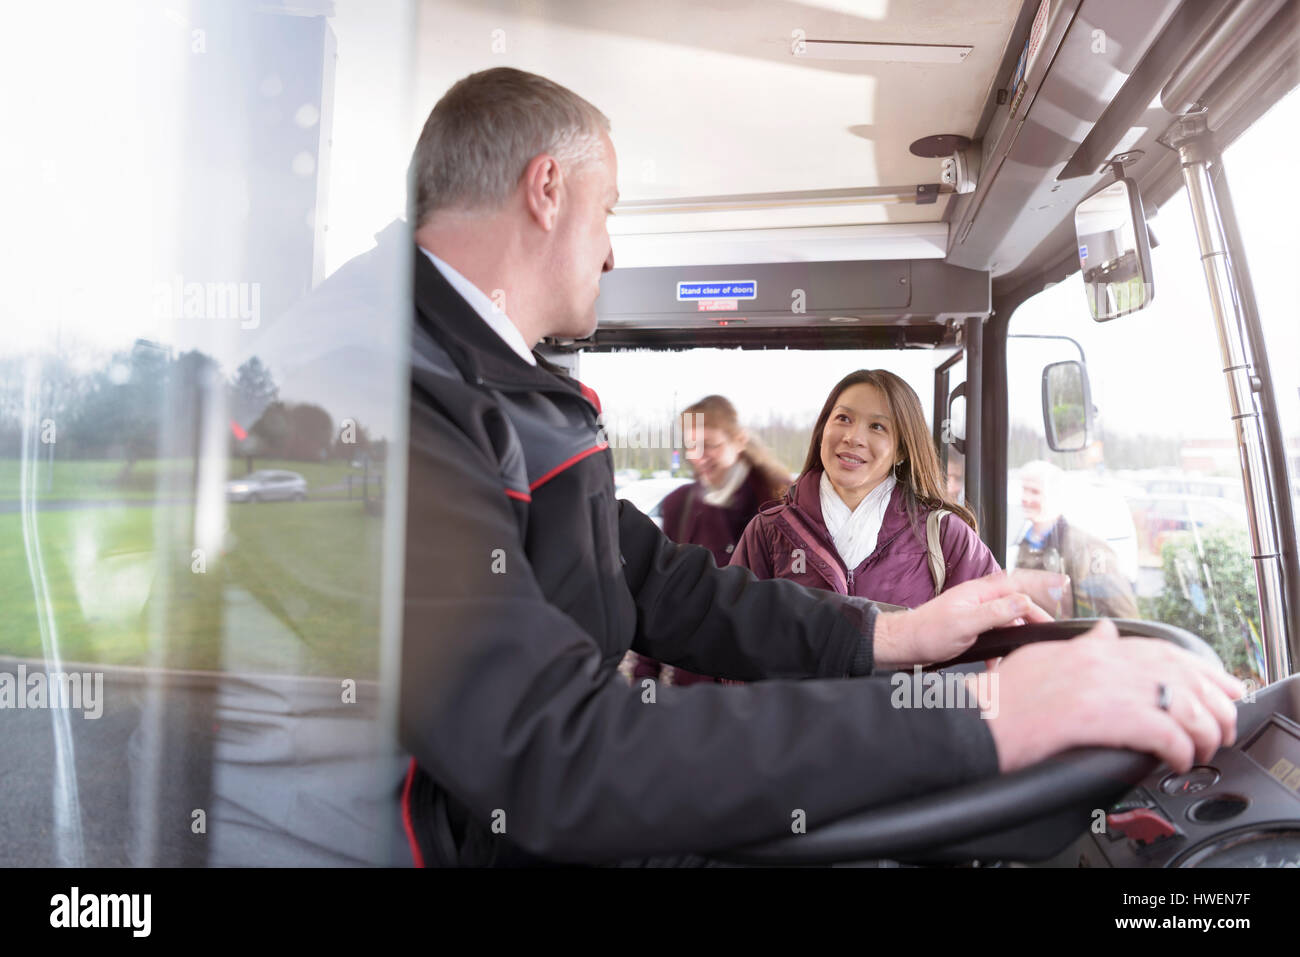 Bus driver with passengers boarding electric bus - Stock Image